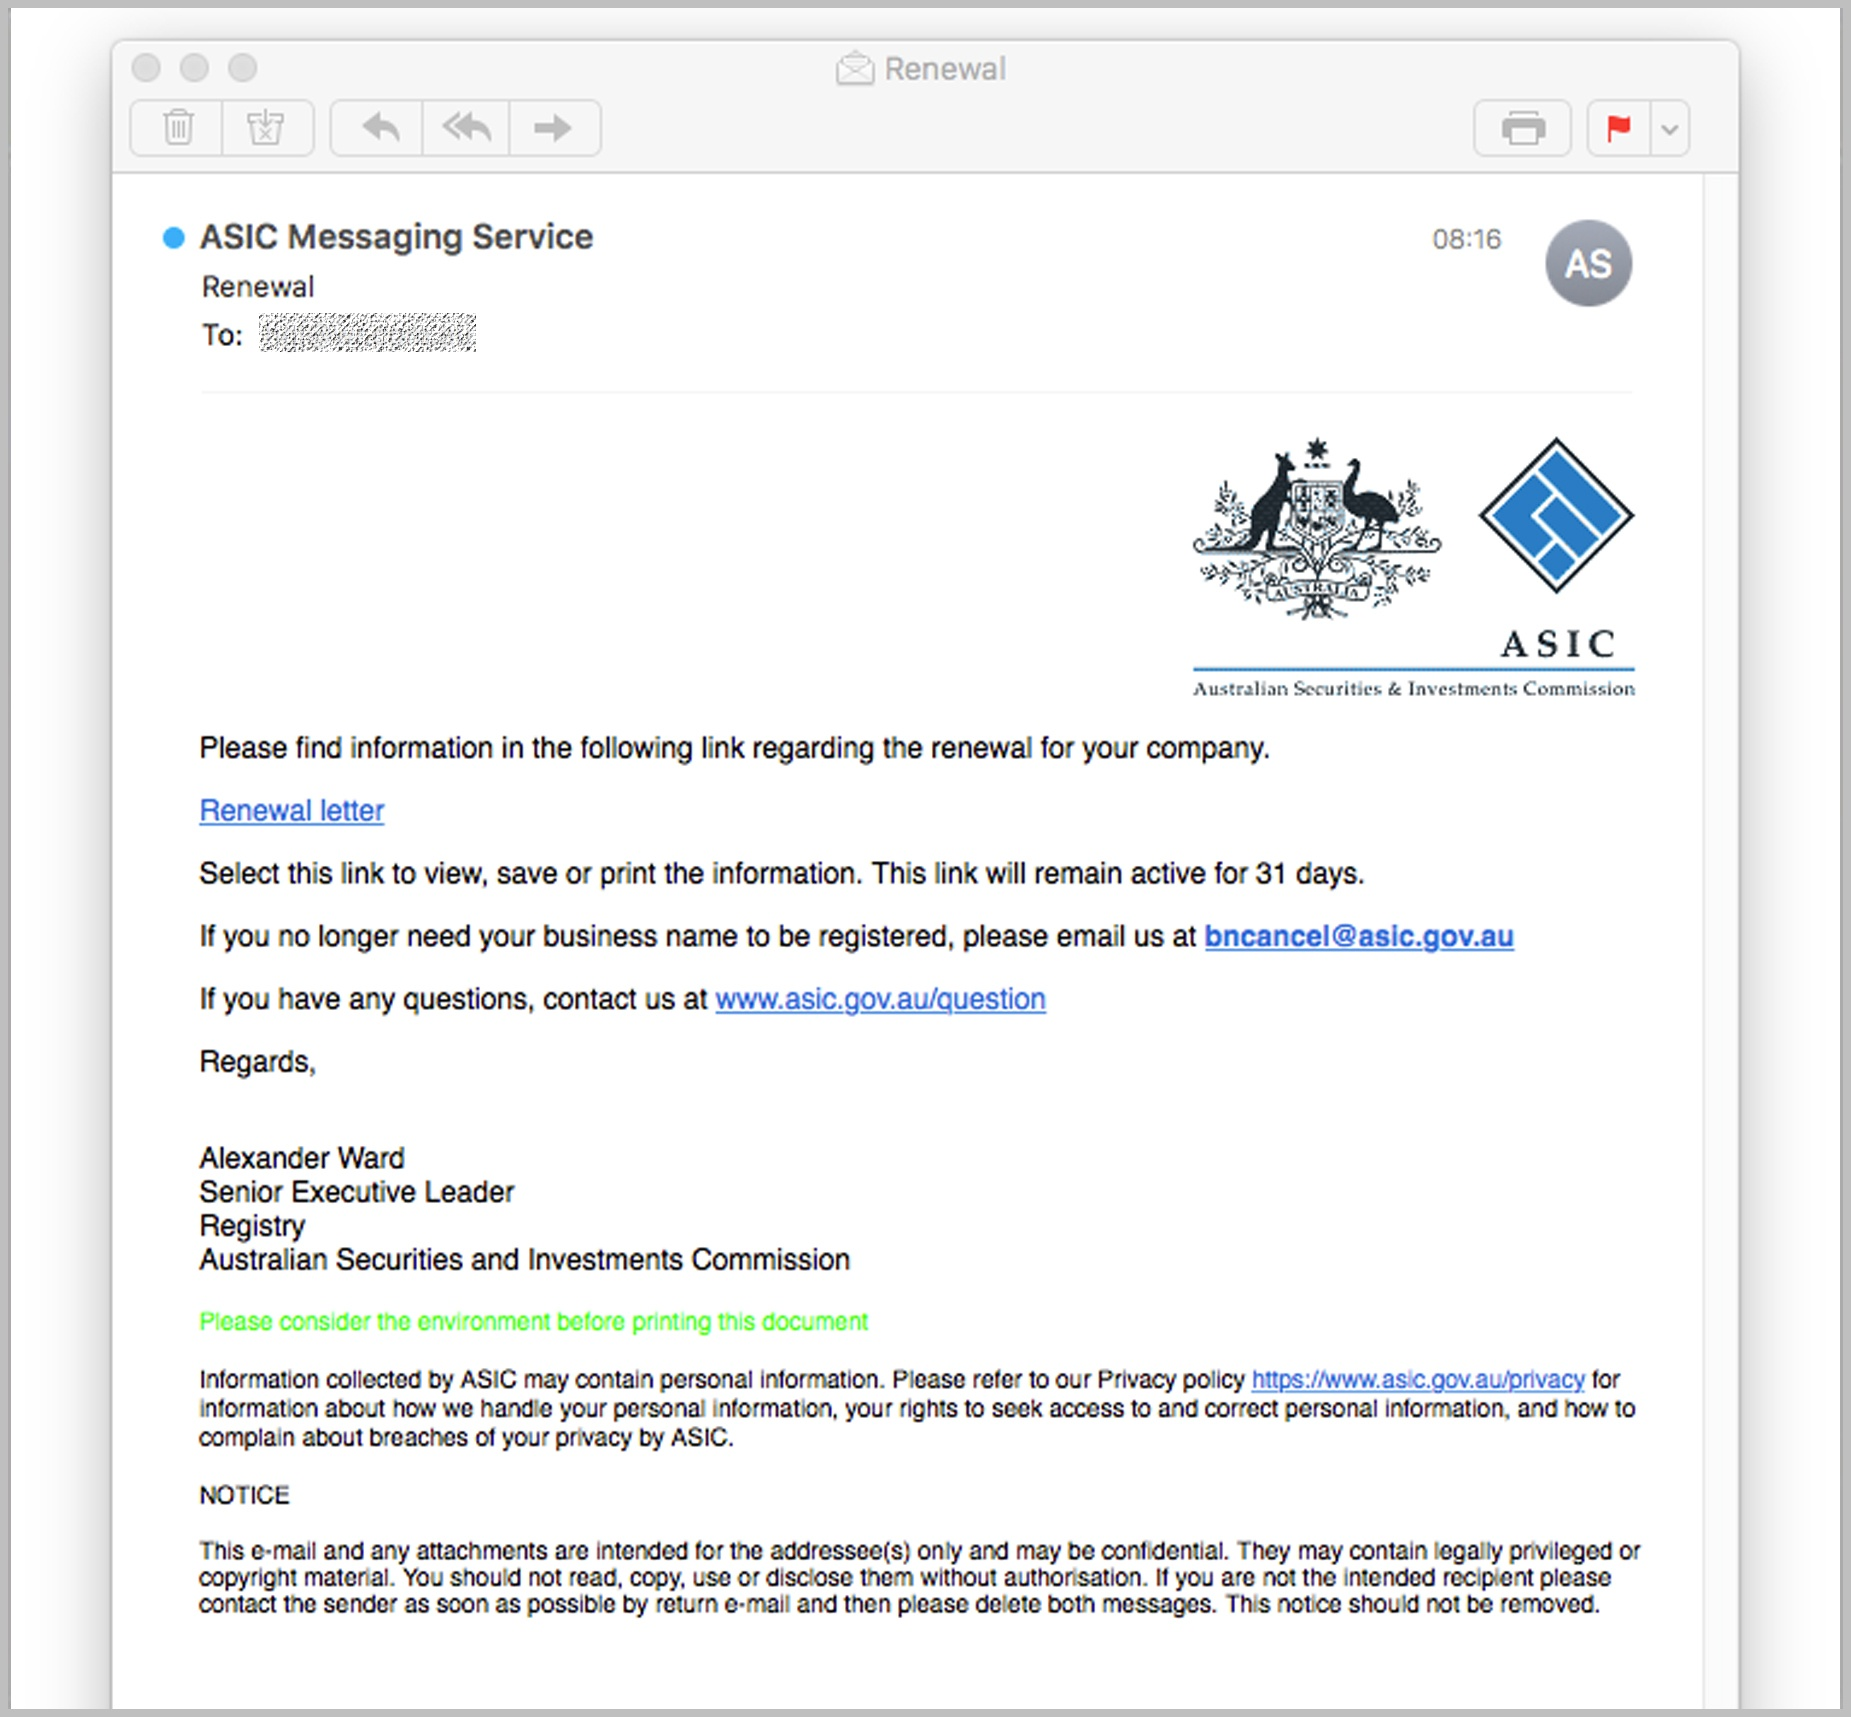 ASIC fake ID malware email April 19 MAILGUARD2.jpg